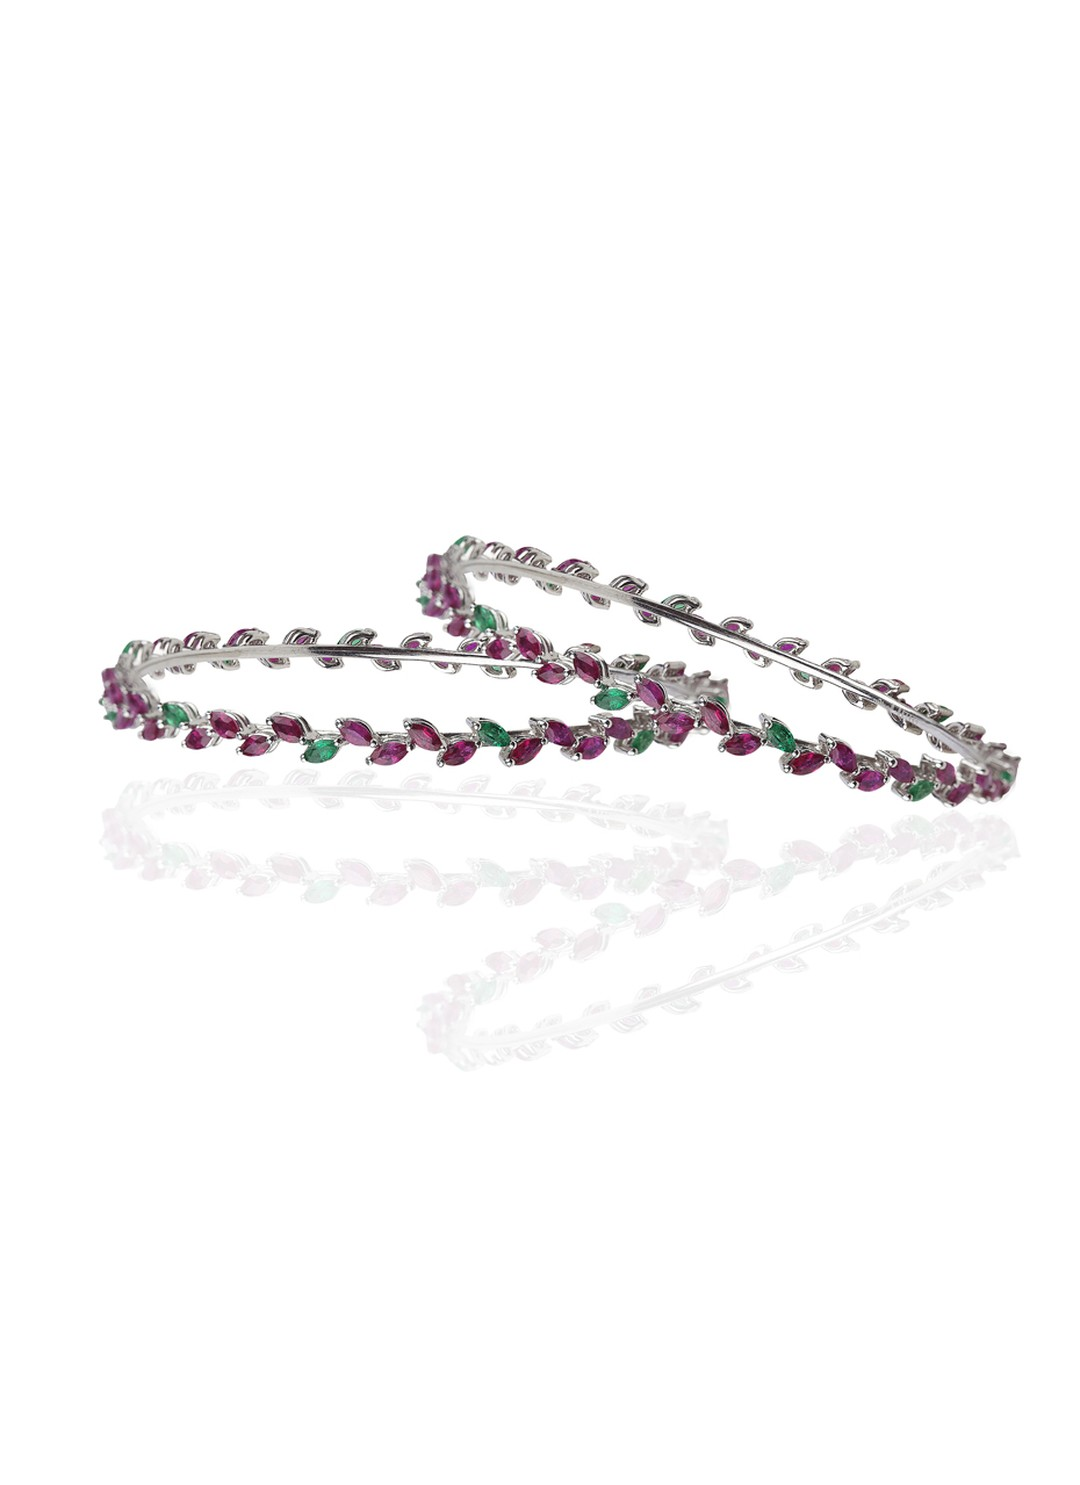 Mirari white gold bangles featuring marquise cut rubies and emeralds.